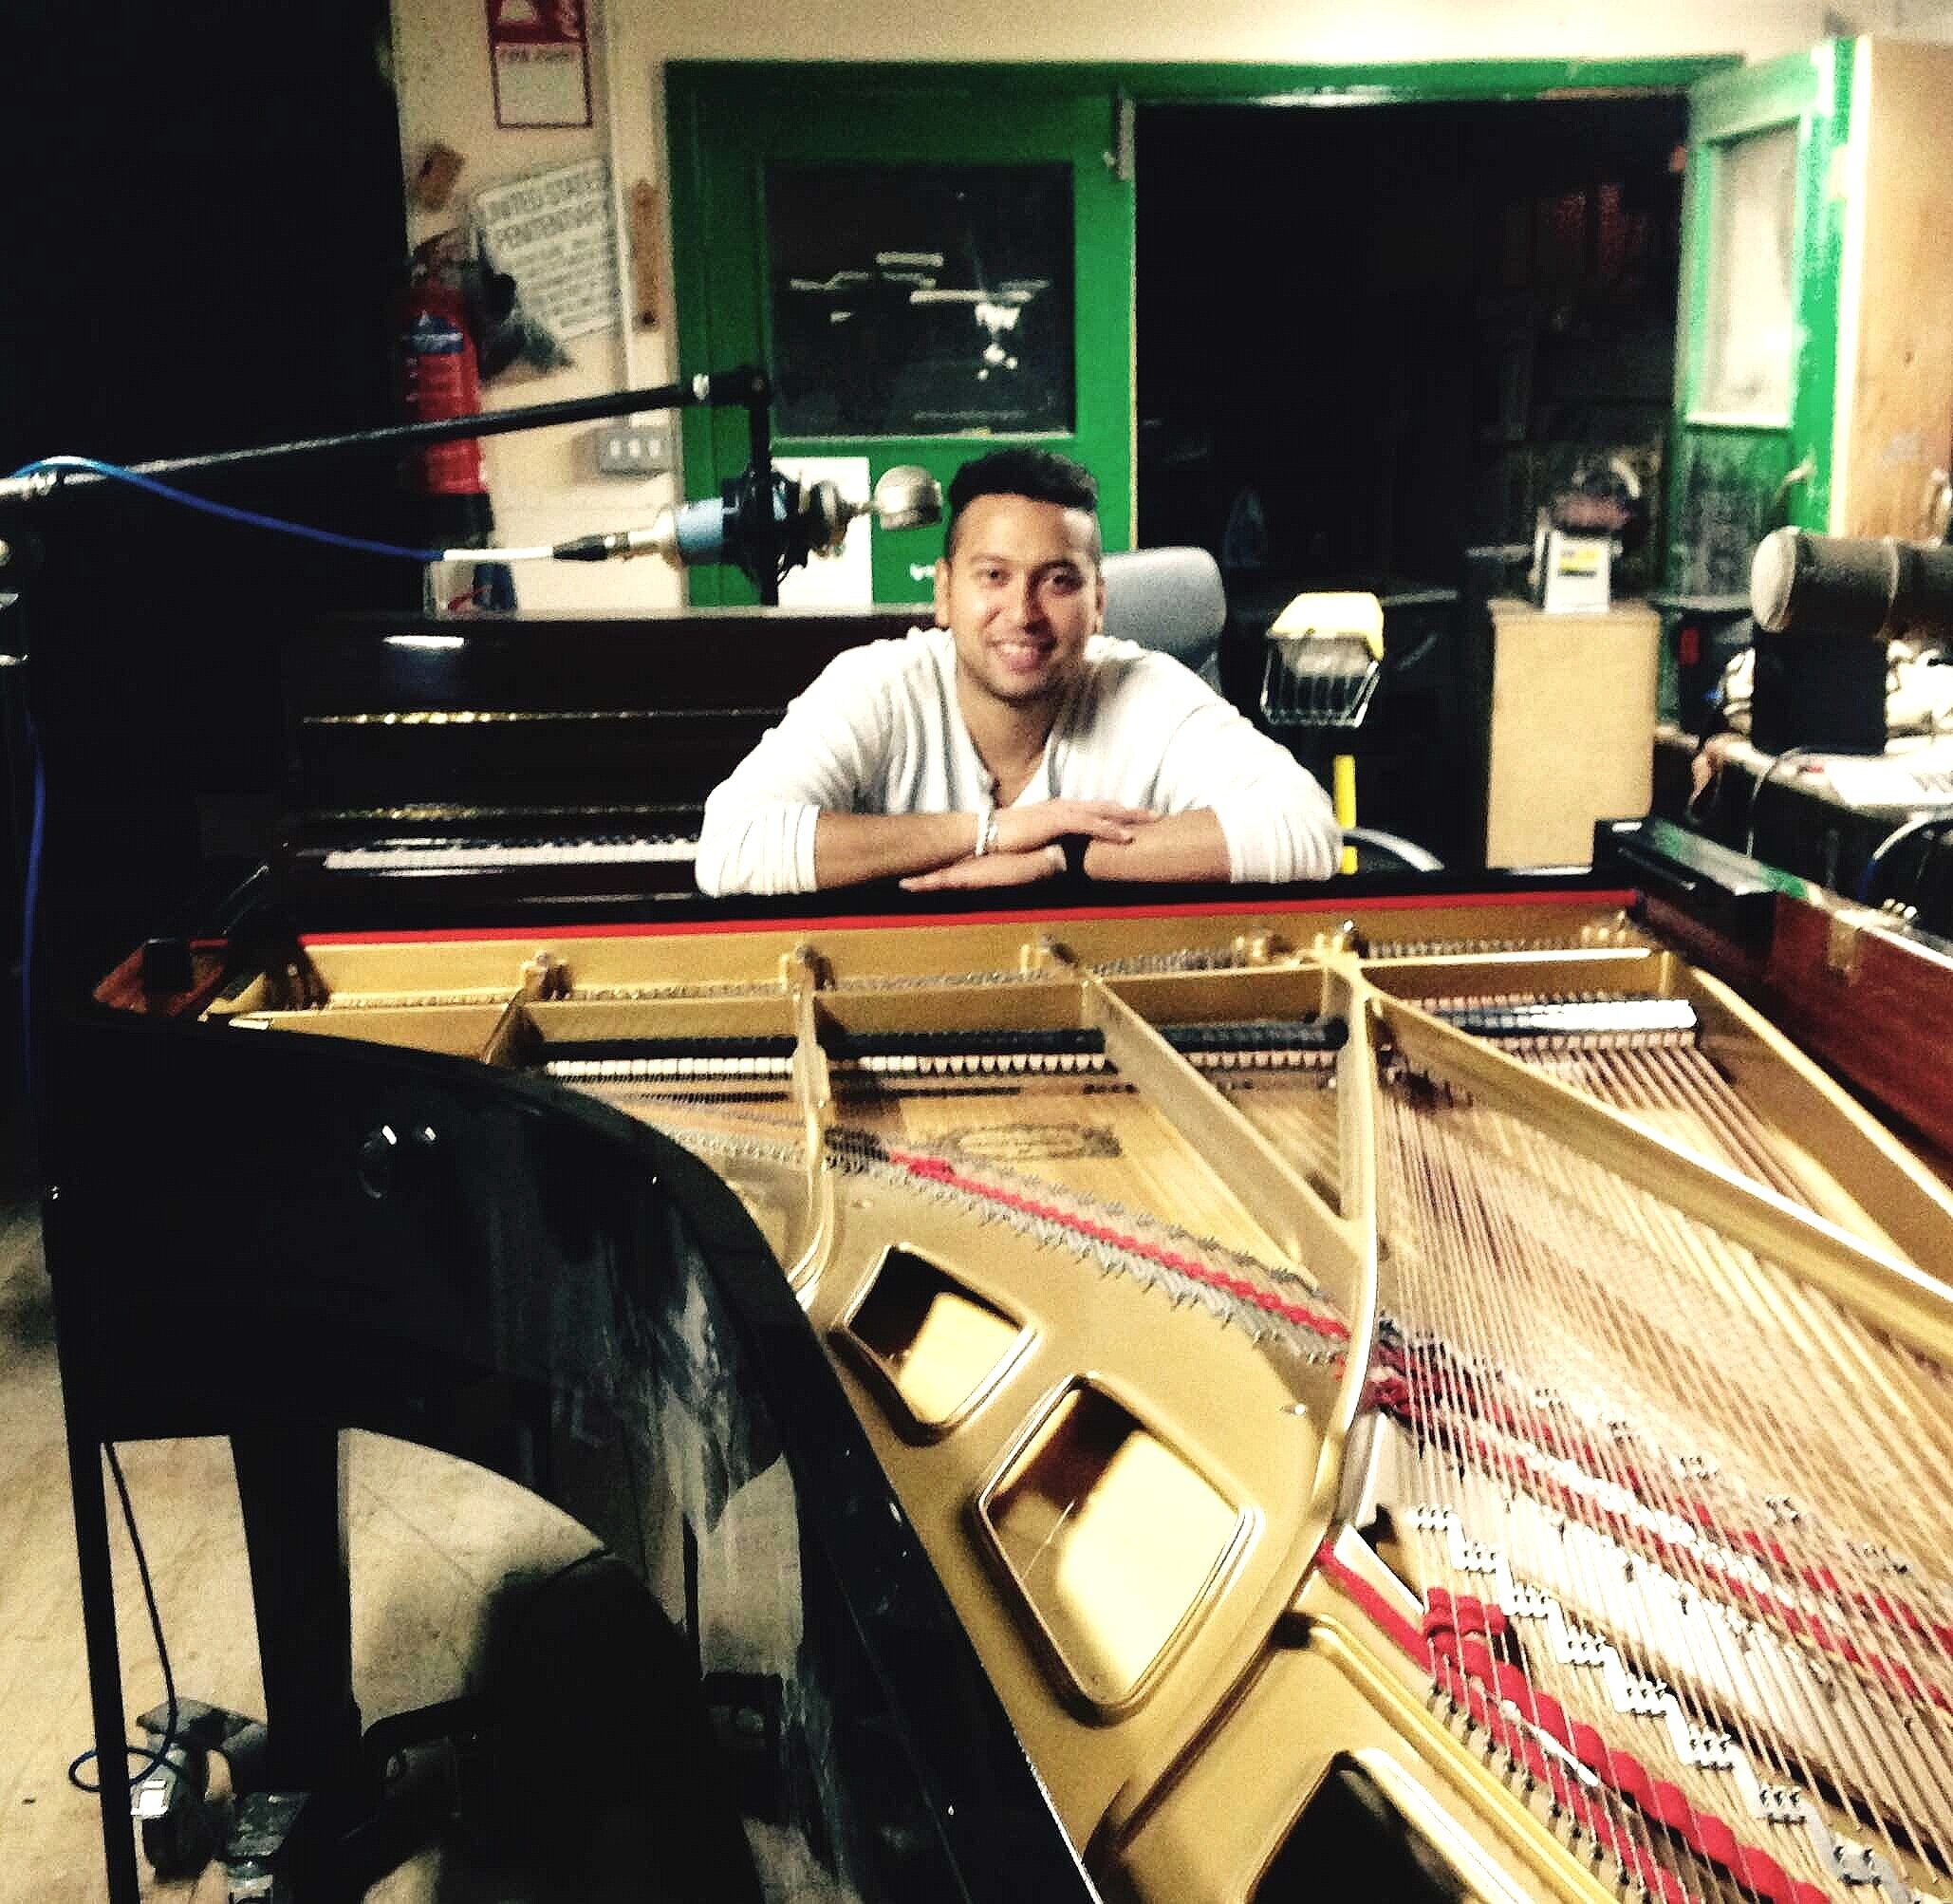 Piano teacher - Ray - has a piano studio at his home in Easton. He is a bubbly and knowledgeable piano teacher. He has studied and performed Jazz and Classical music extensively and can teach anyone how to play the piano to the highest standard.